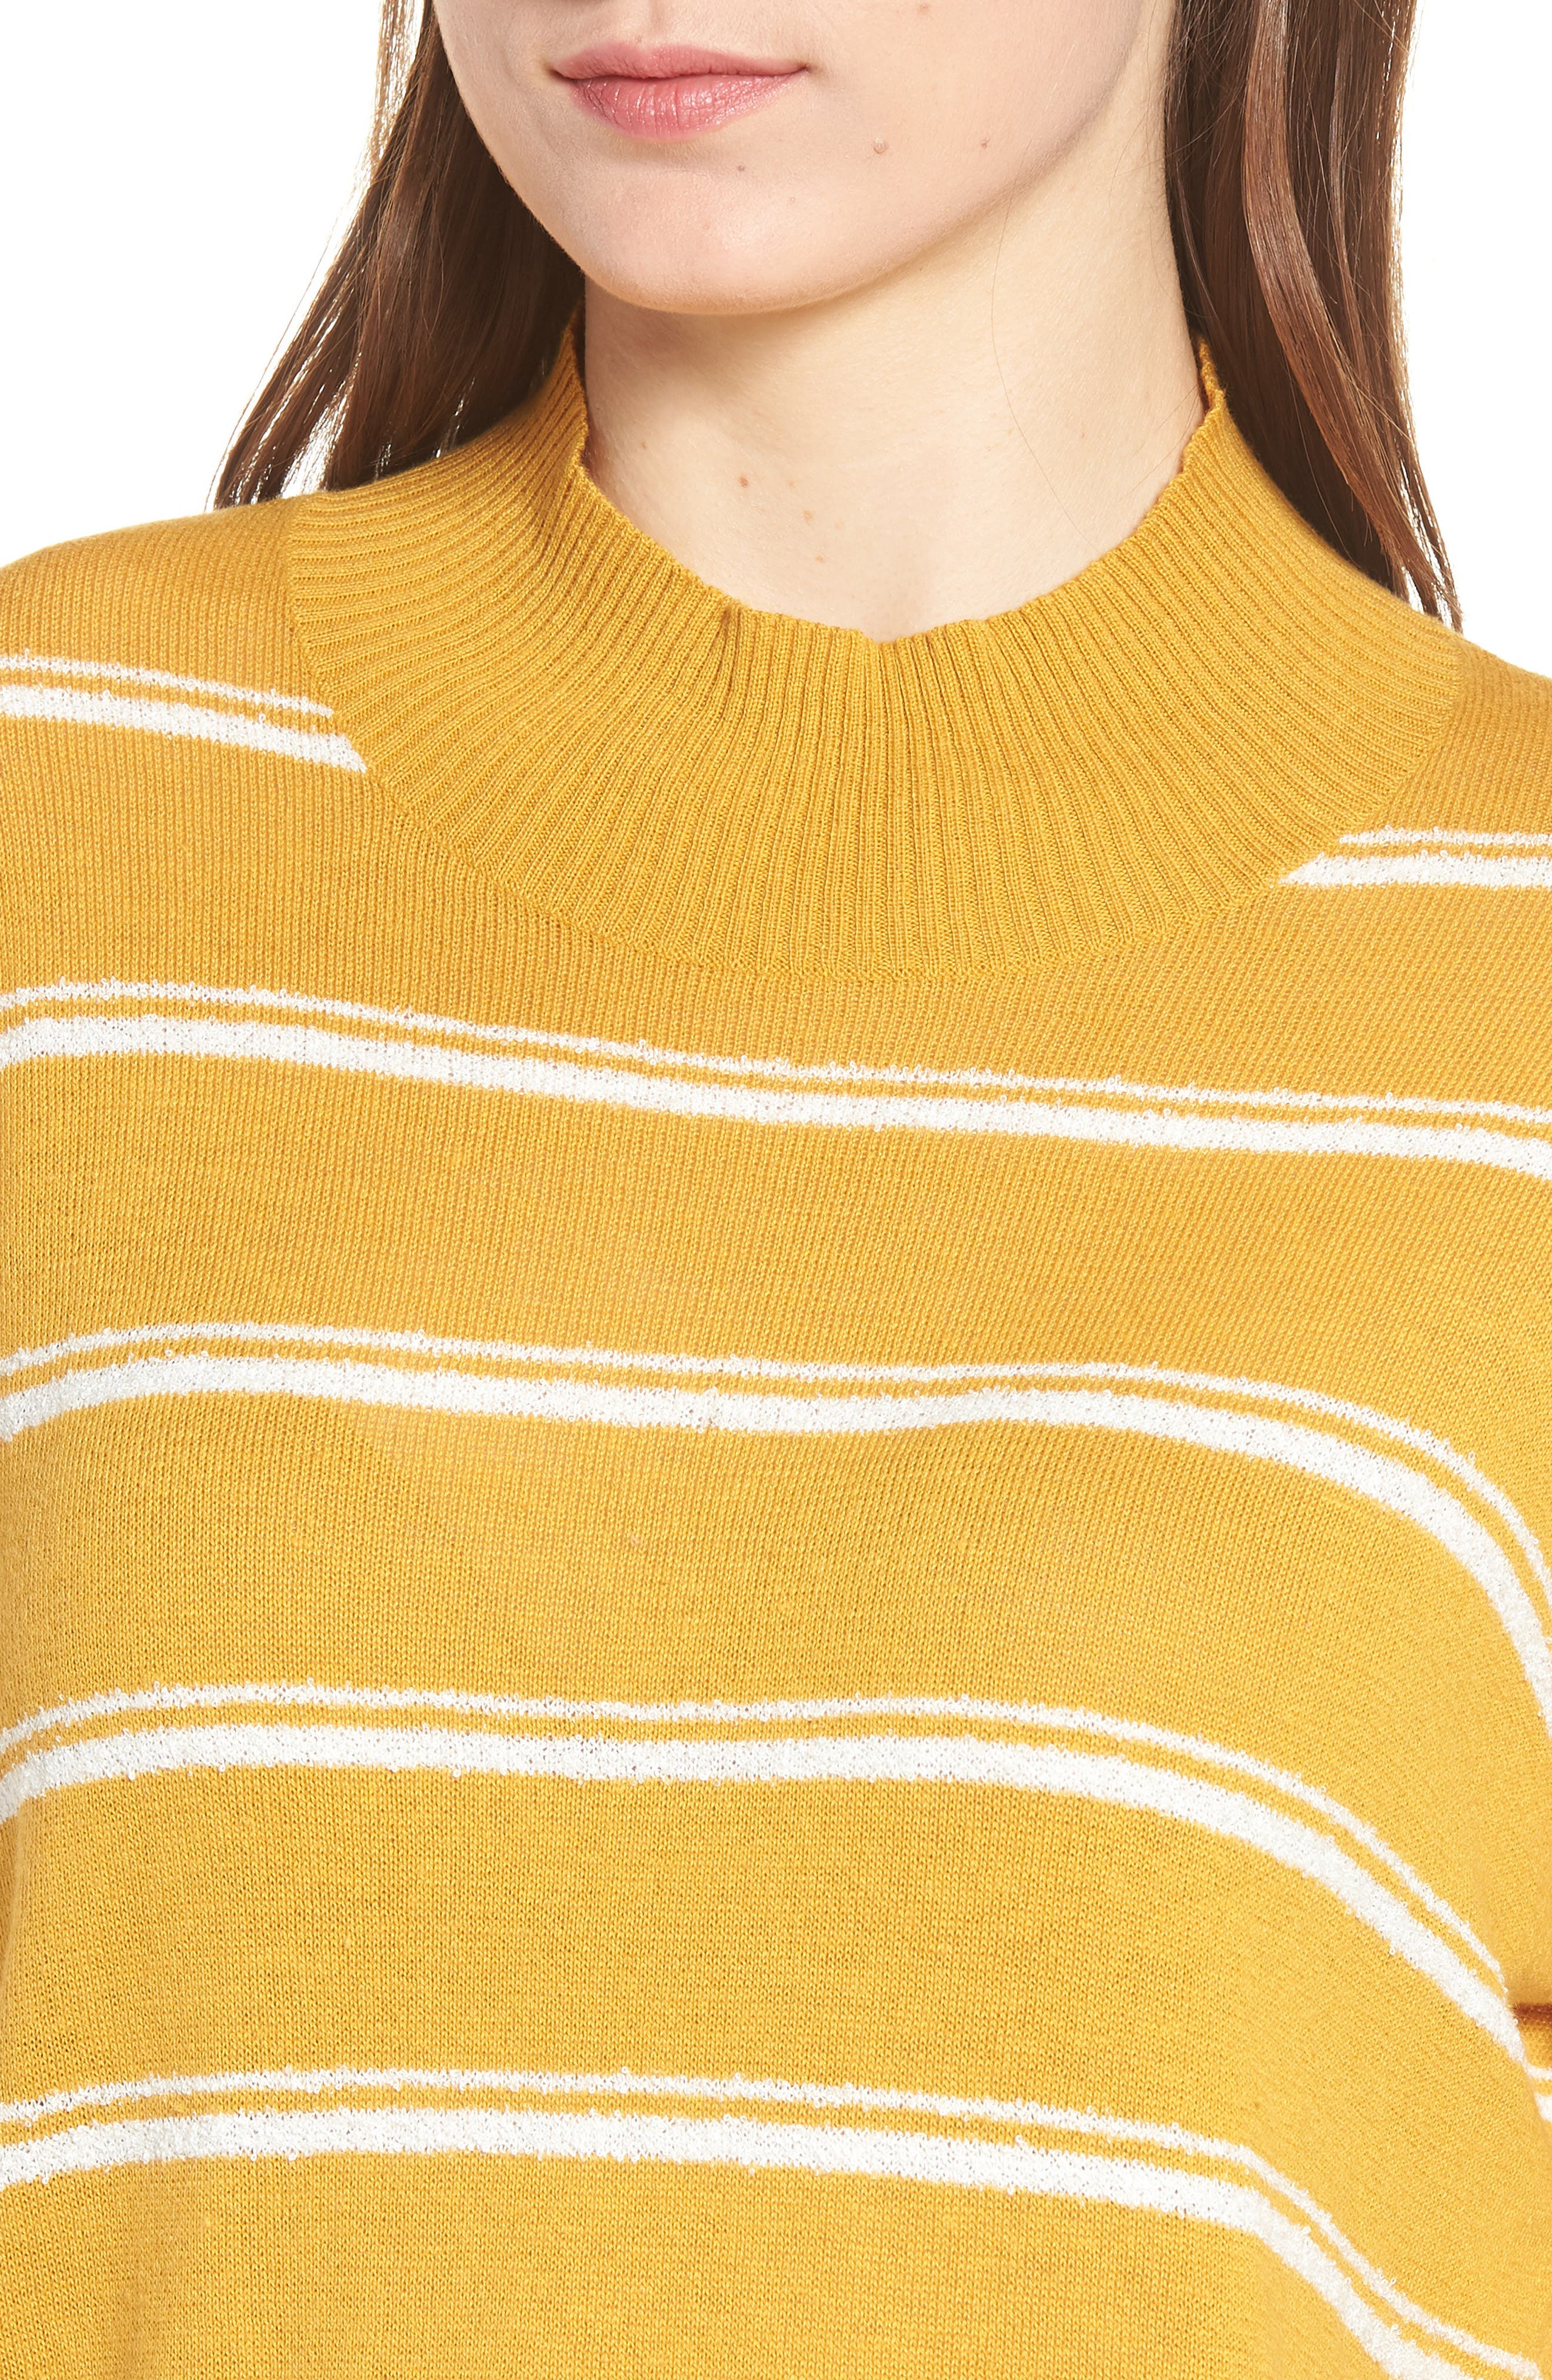 Armed Stripe Sweater,                             Alternate thumbnail 4, color,                             779